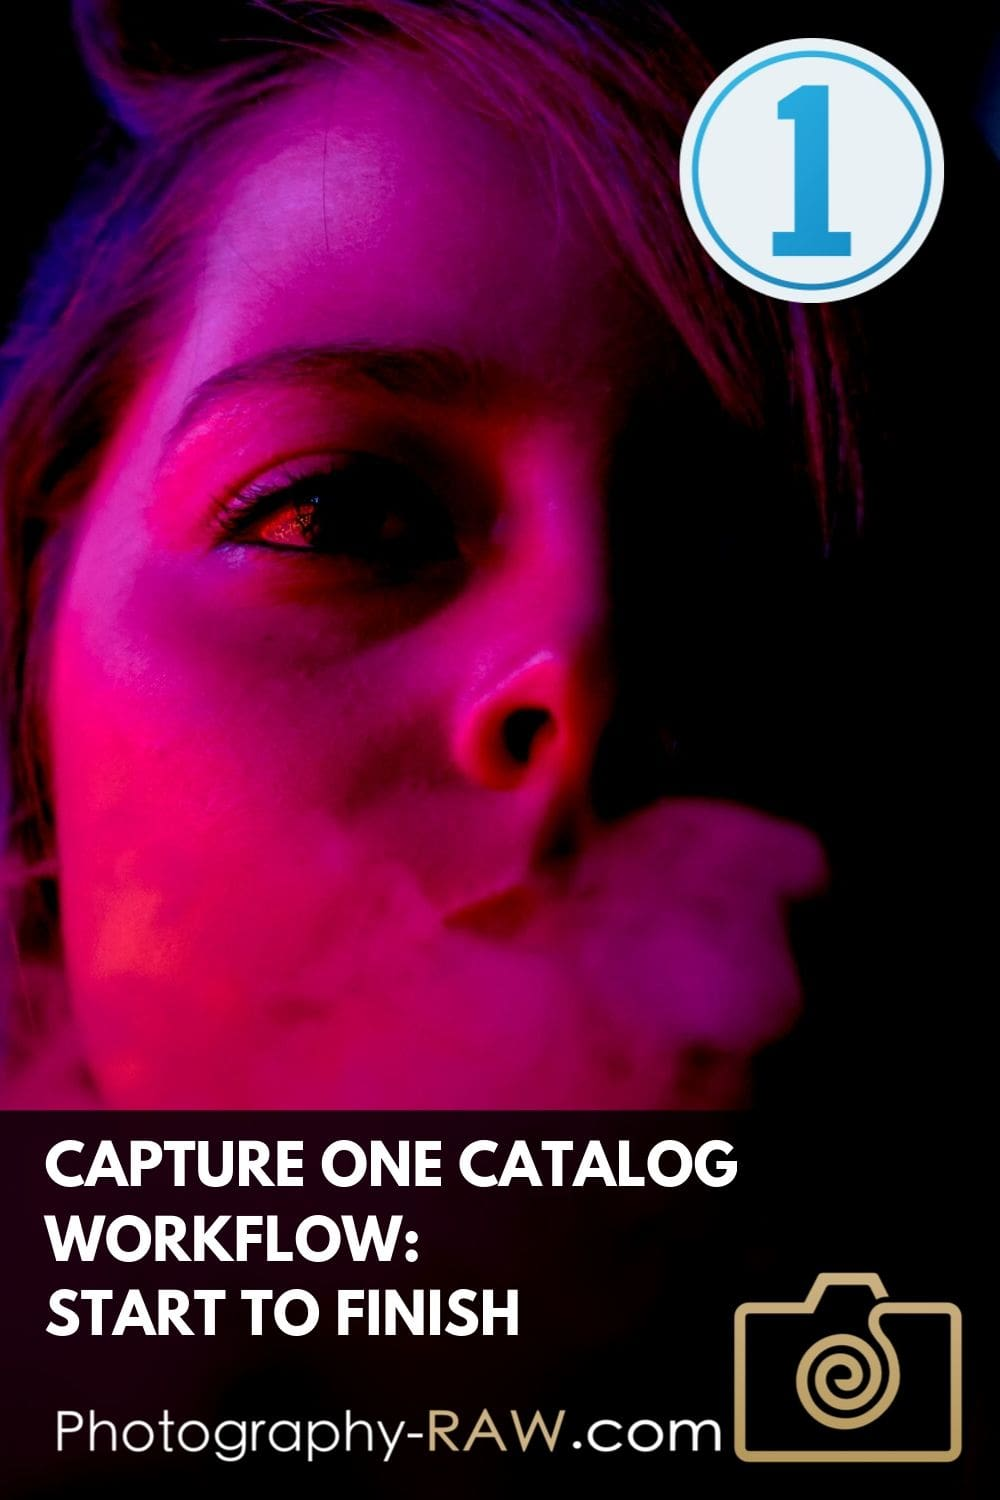 Explore Capture One\'s organizing features. Learn an effective way to use Capture One for importing, culling, rating, organizing, and exporting your photos.